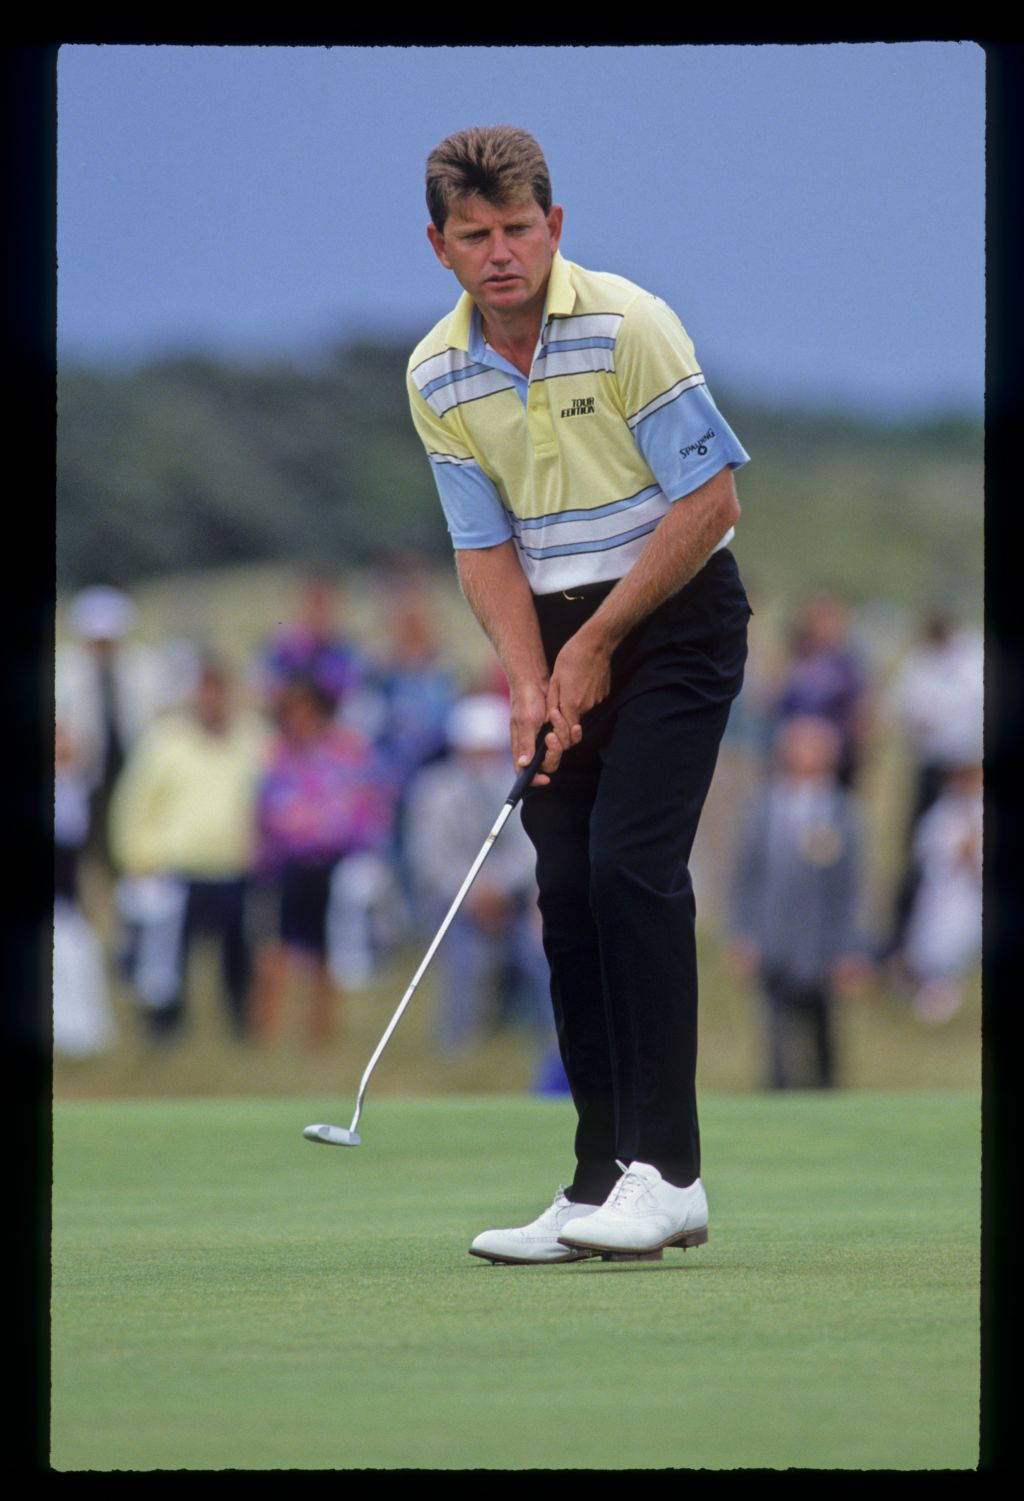 Nick Price stepping after a putt during the 1992 Open Championship